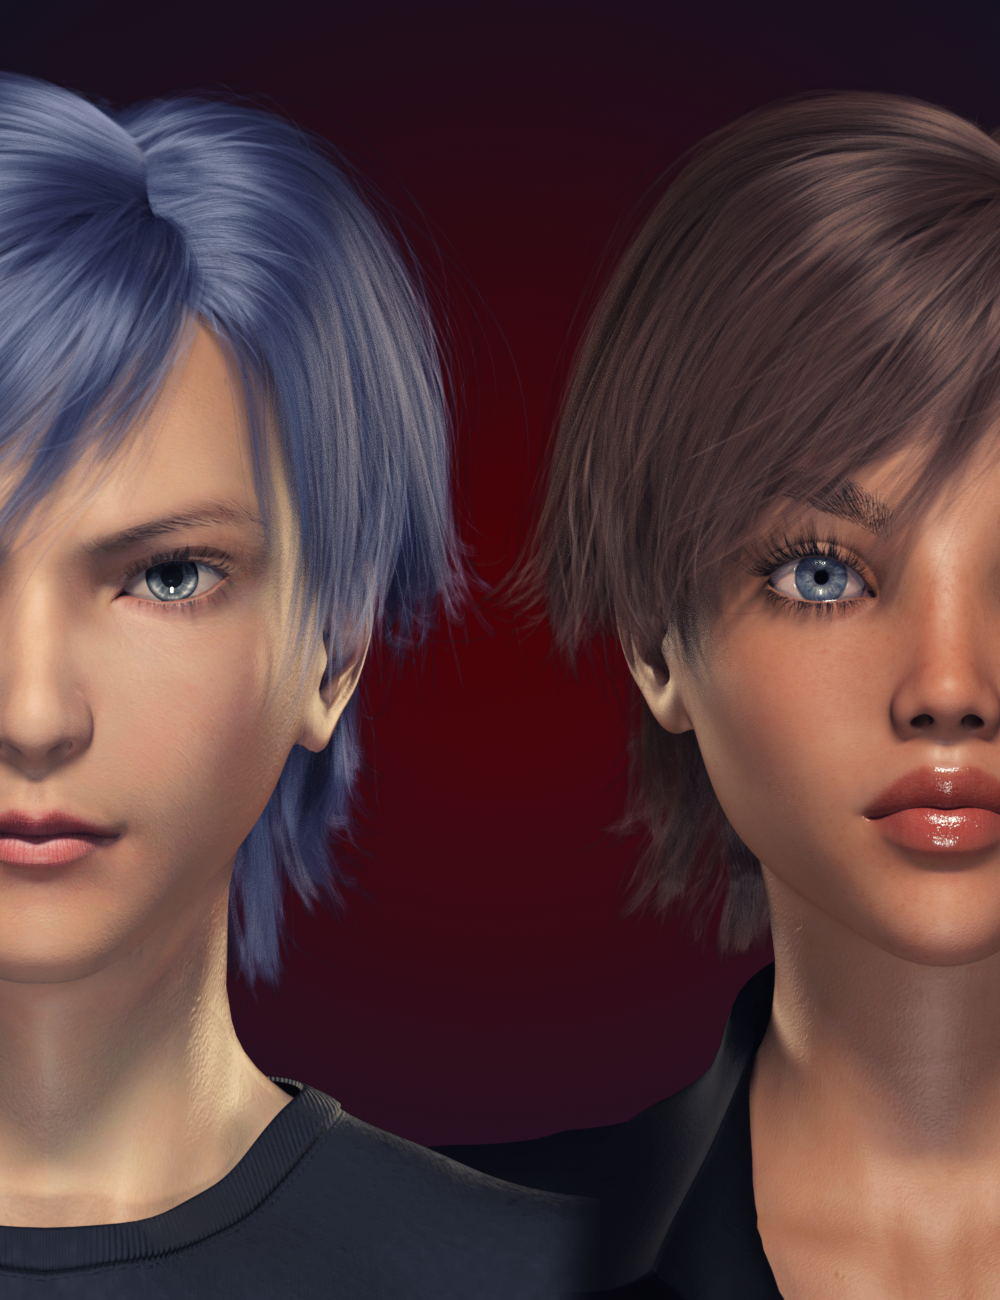 FE Short Hair Vol 1 for Genesis 8 Male and Female by: FeSoul, 3D Models by Daz 3D